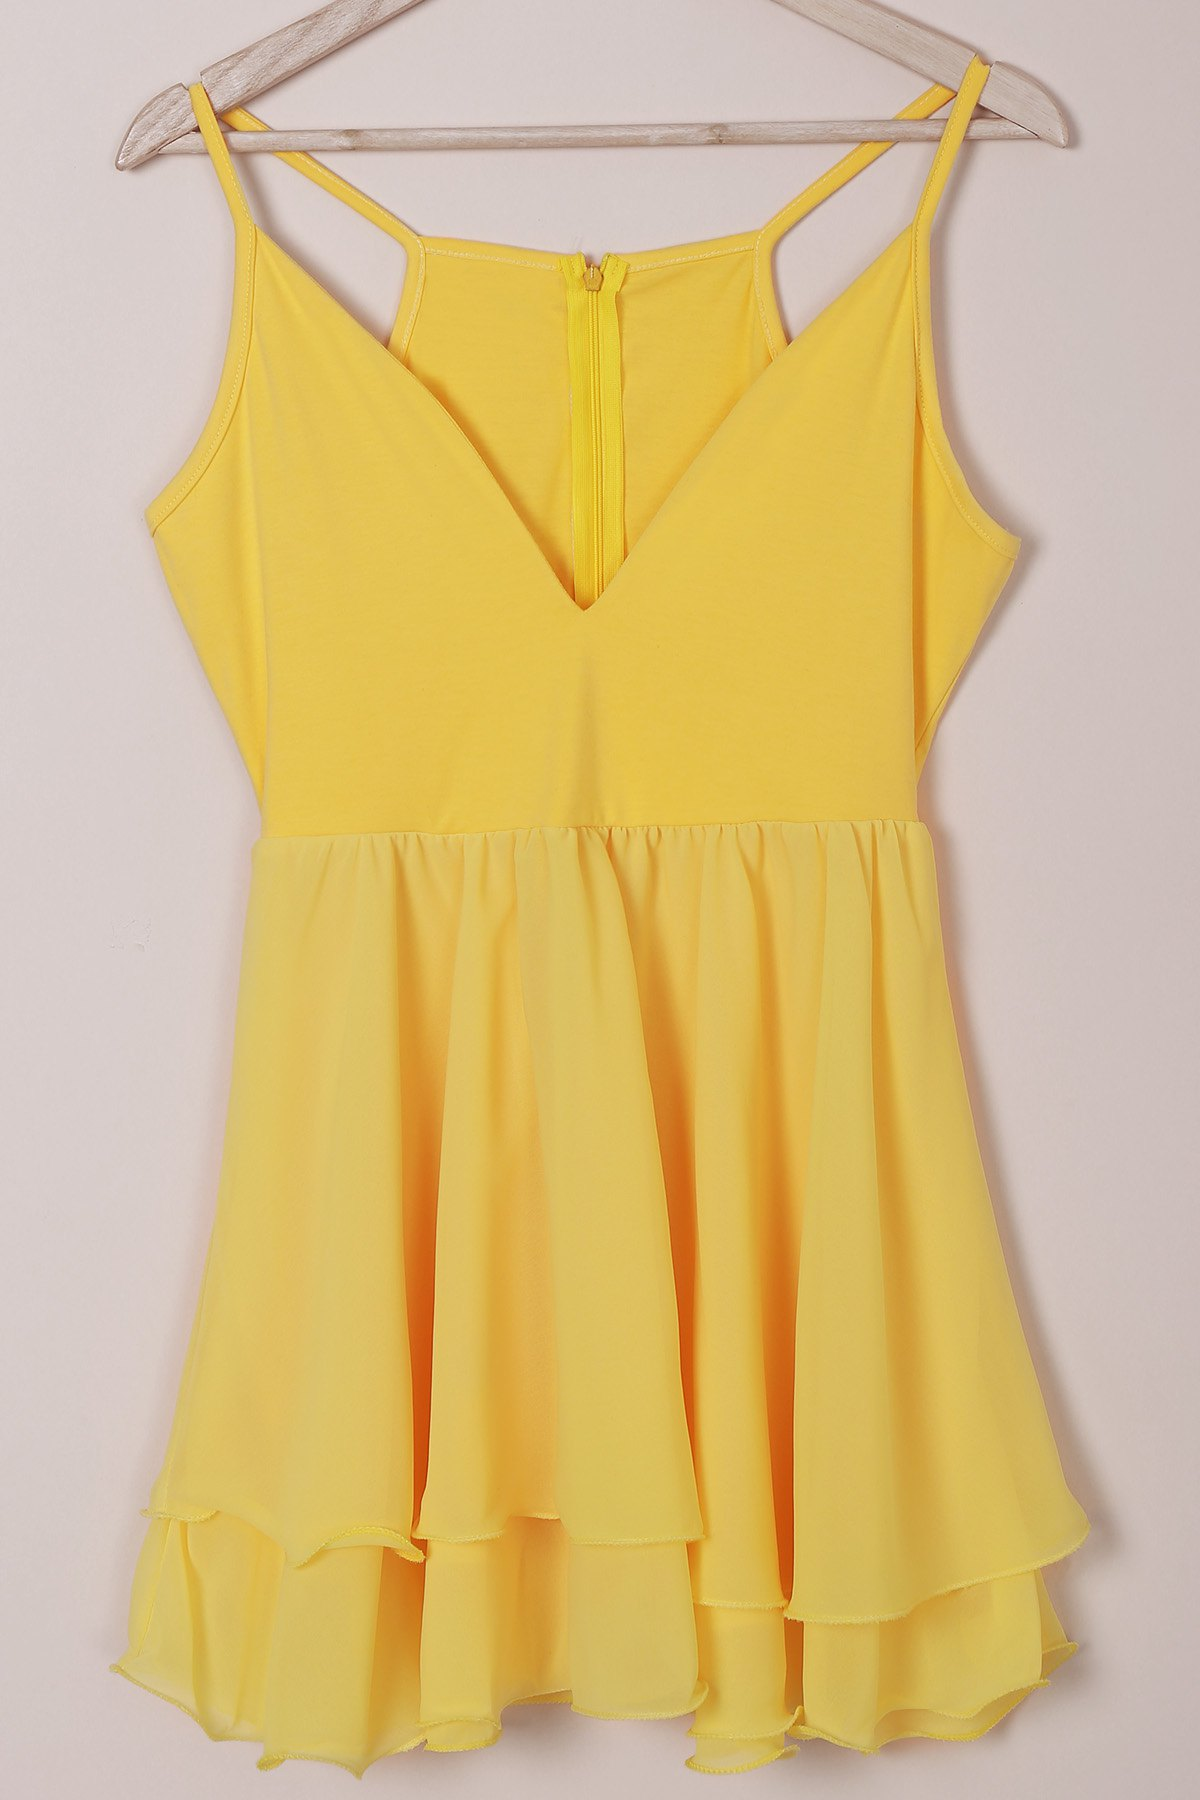 Sexy Women's Plunging Neck Spaghetti Strap Layered Flounced Dress - YELLOW S